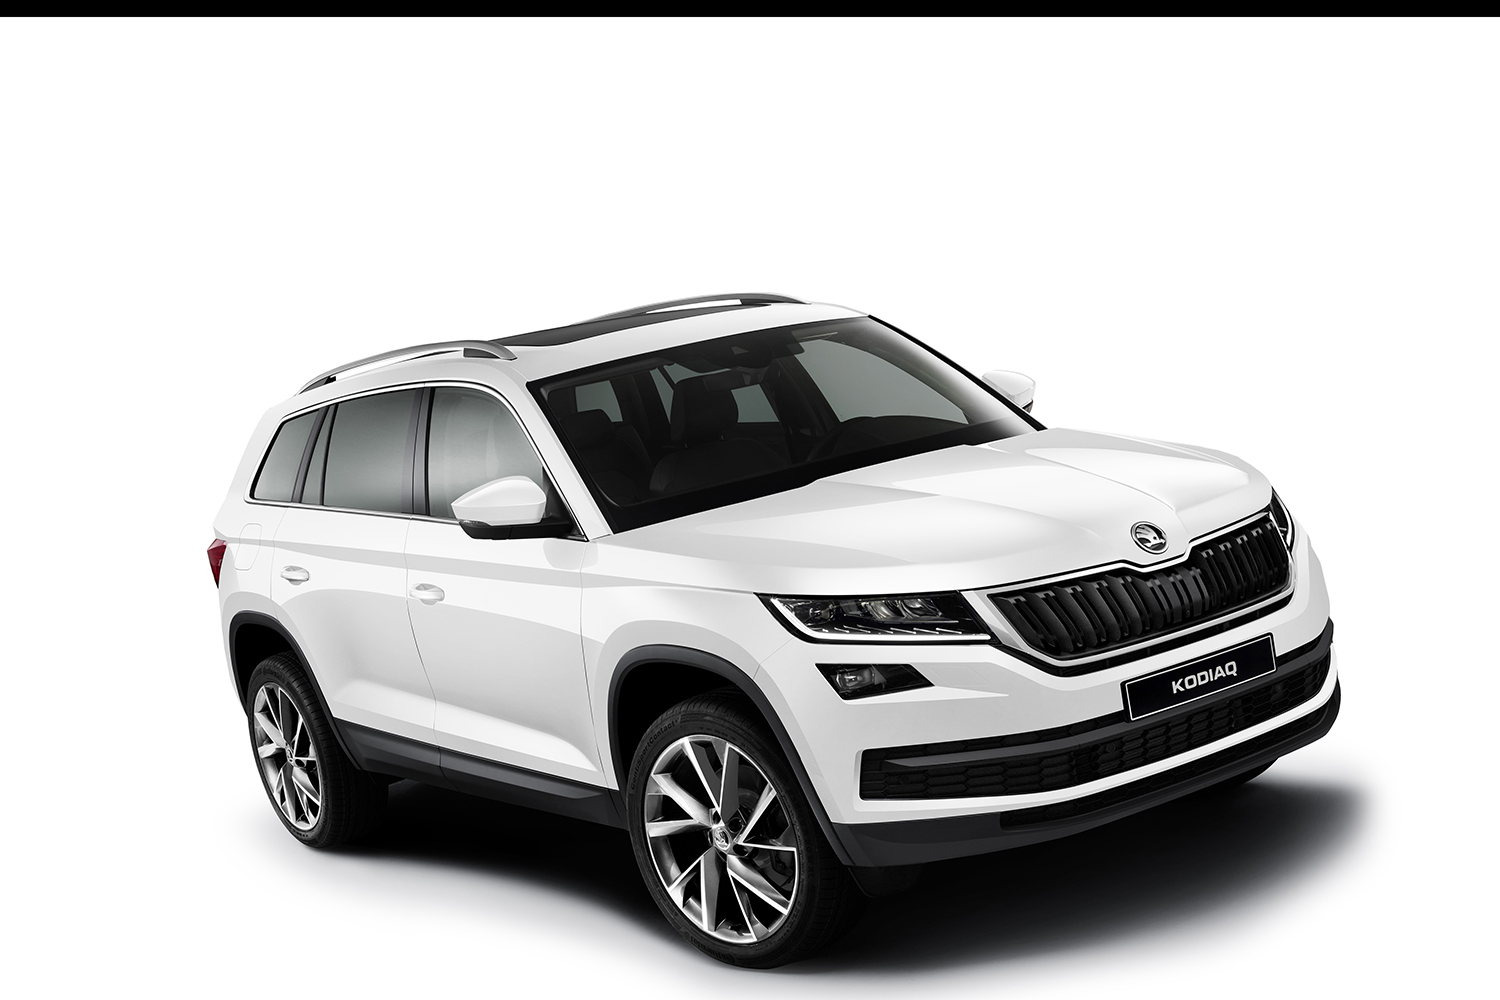 skoda kodiaq edition 2 0 tdi 150 dsg review. Black Bedroom Furniture Sets. Home Design Ideas